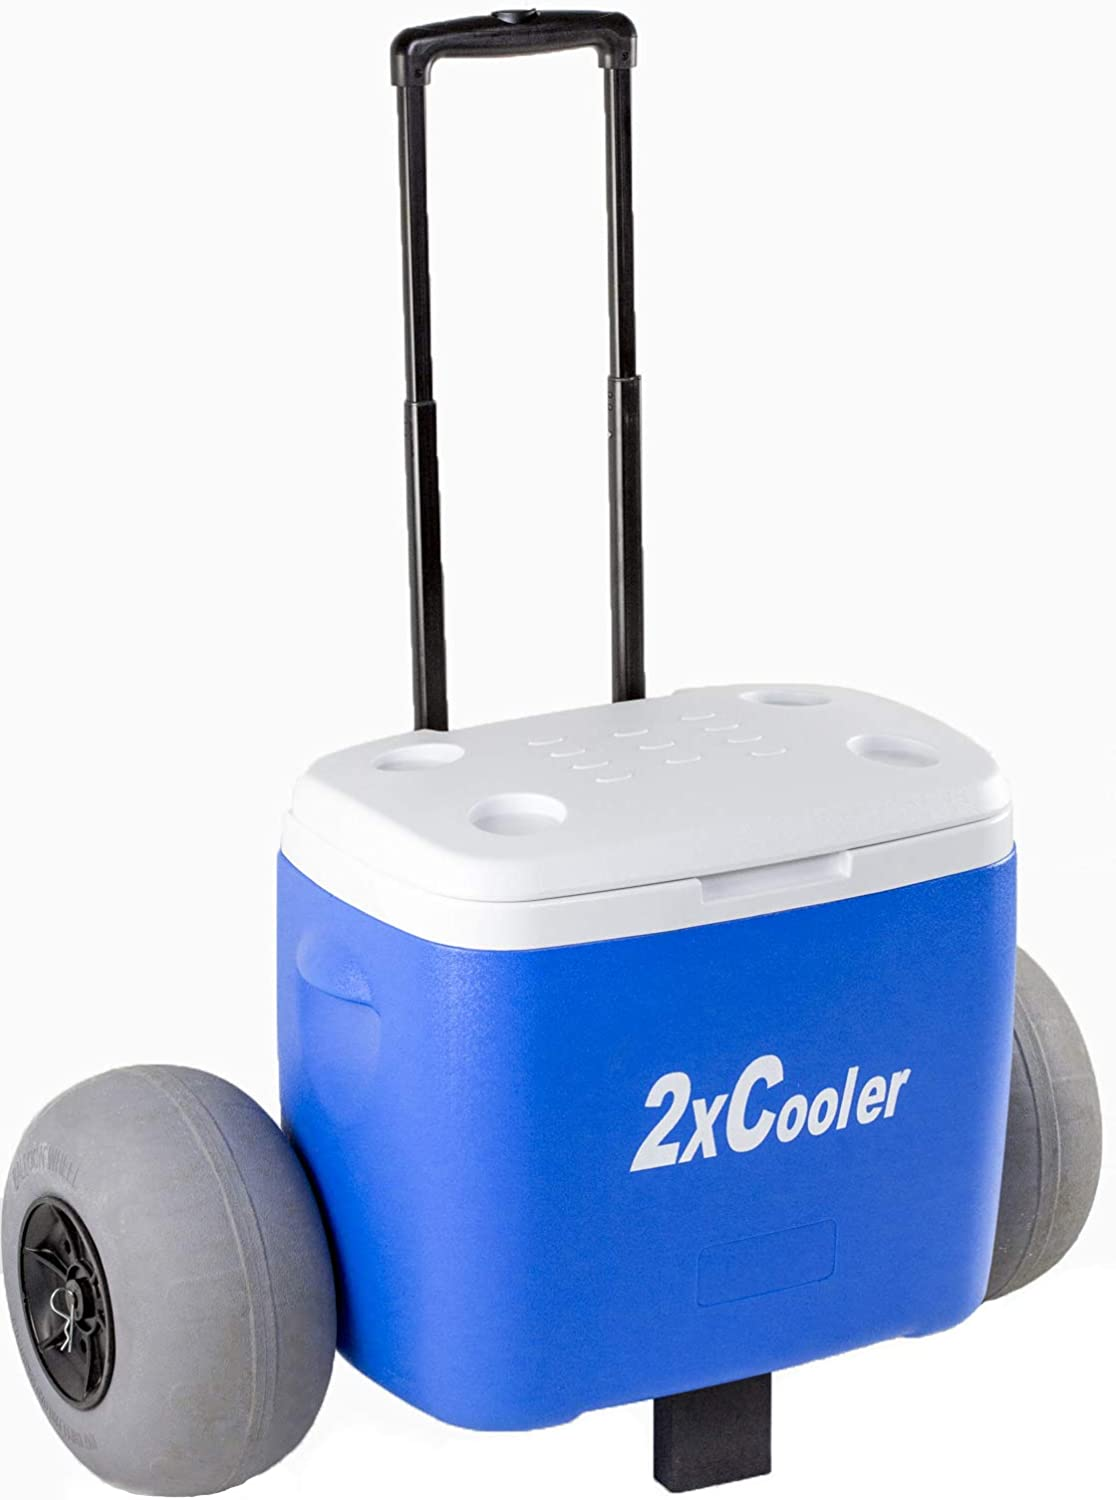 All Terrain Coolers Wheeled Cooler with Inflatable Tires Perfect for The Beach